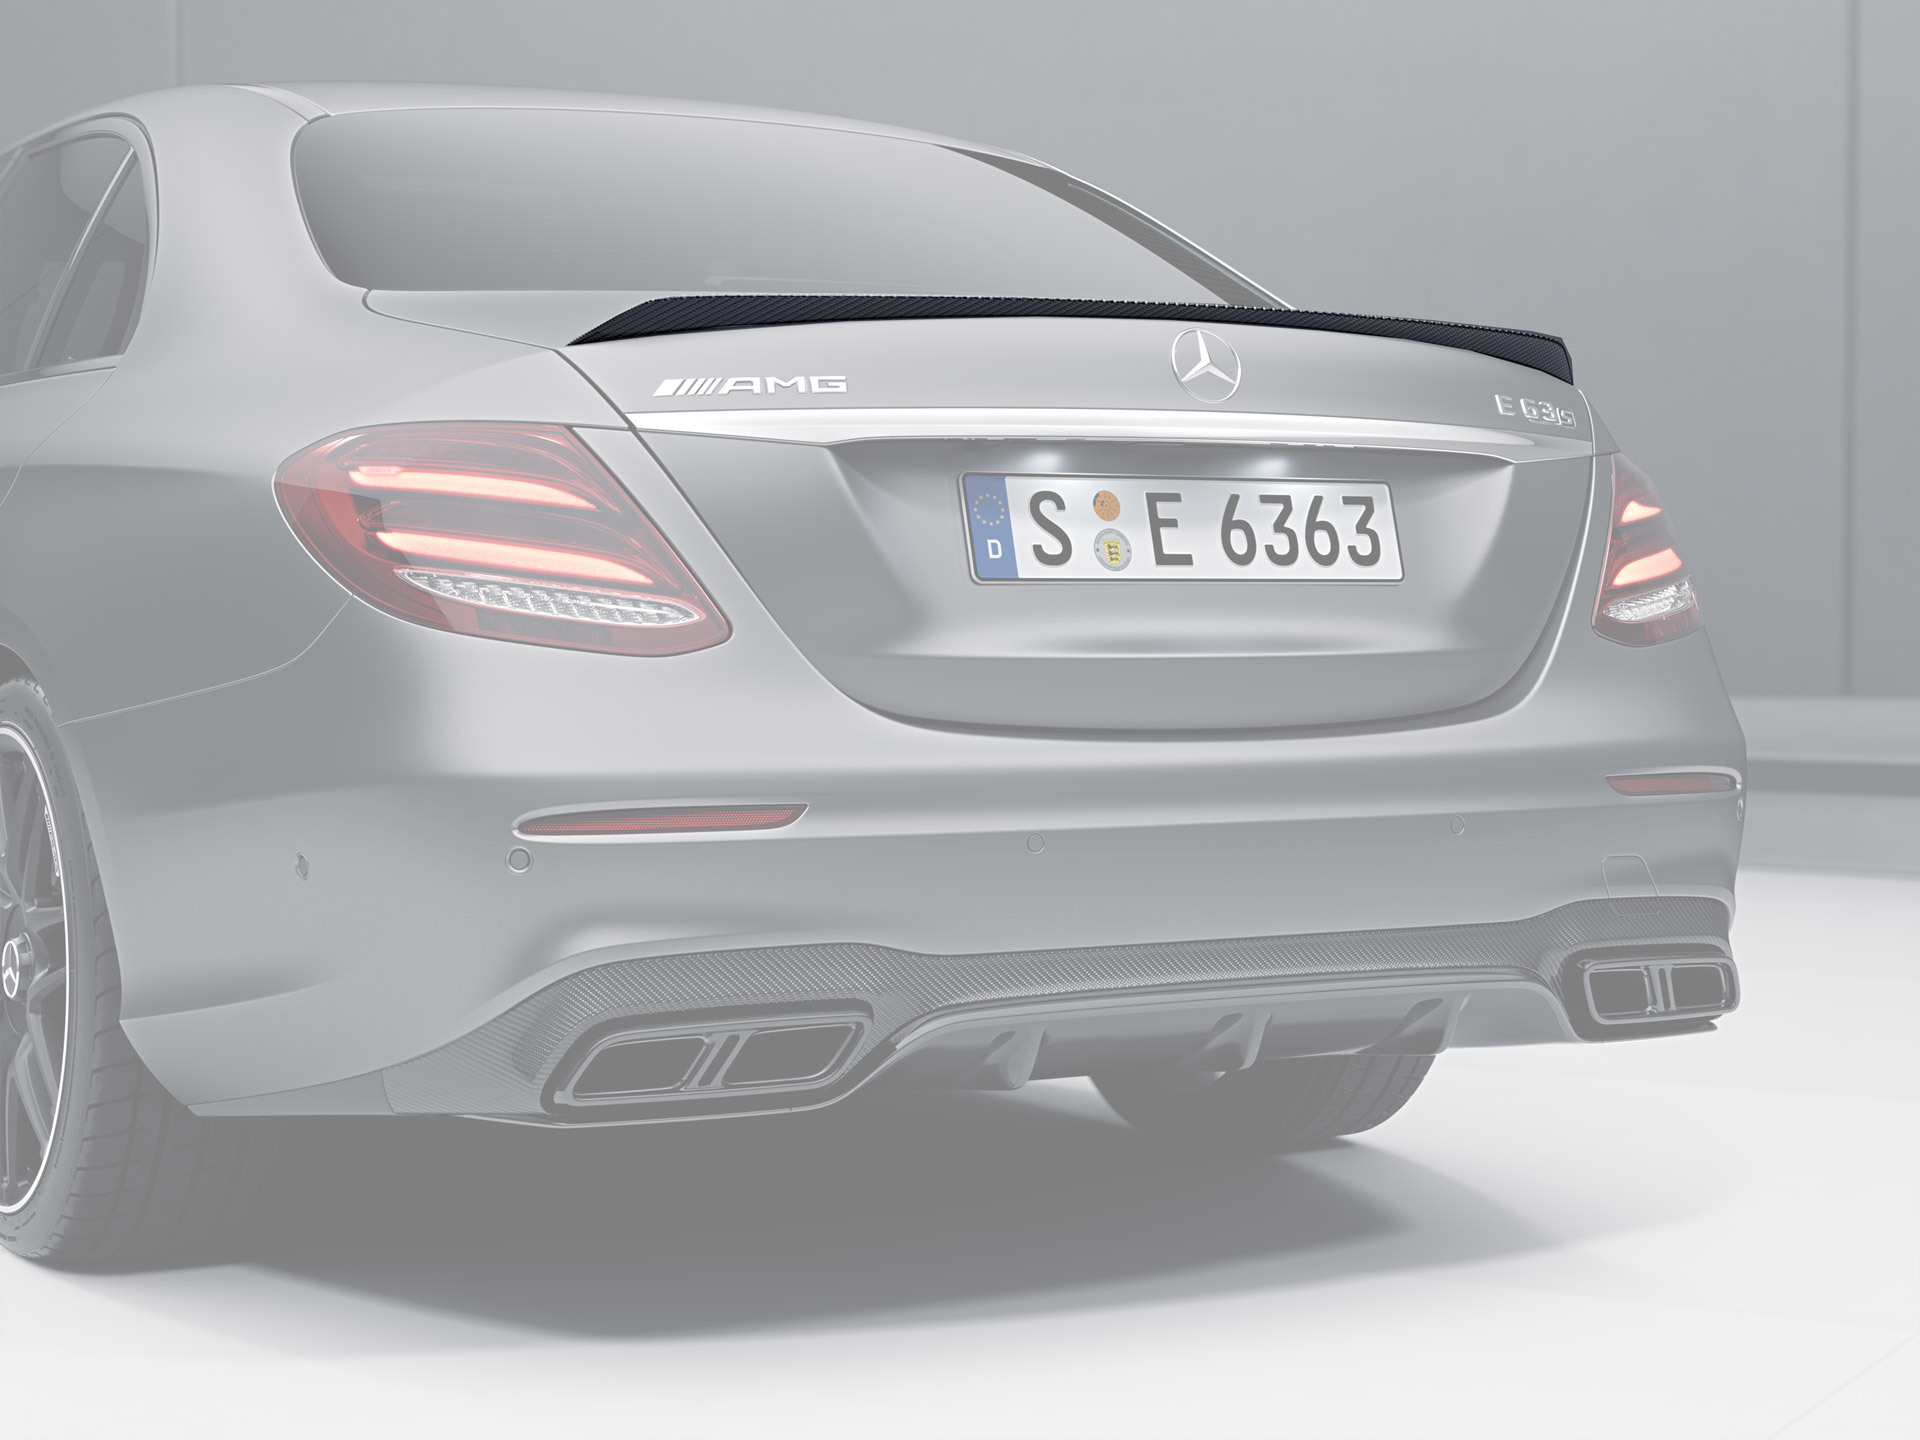 Hodoor Performance Carbon fiber trunk spoiler 63 AMG Style for Mercedes E-class W213